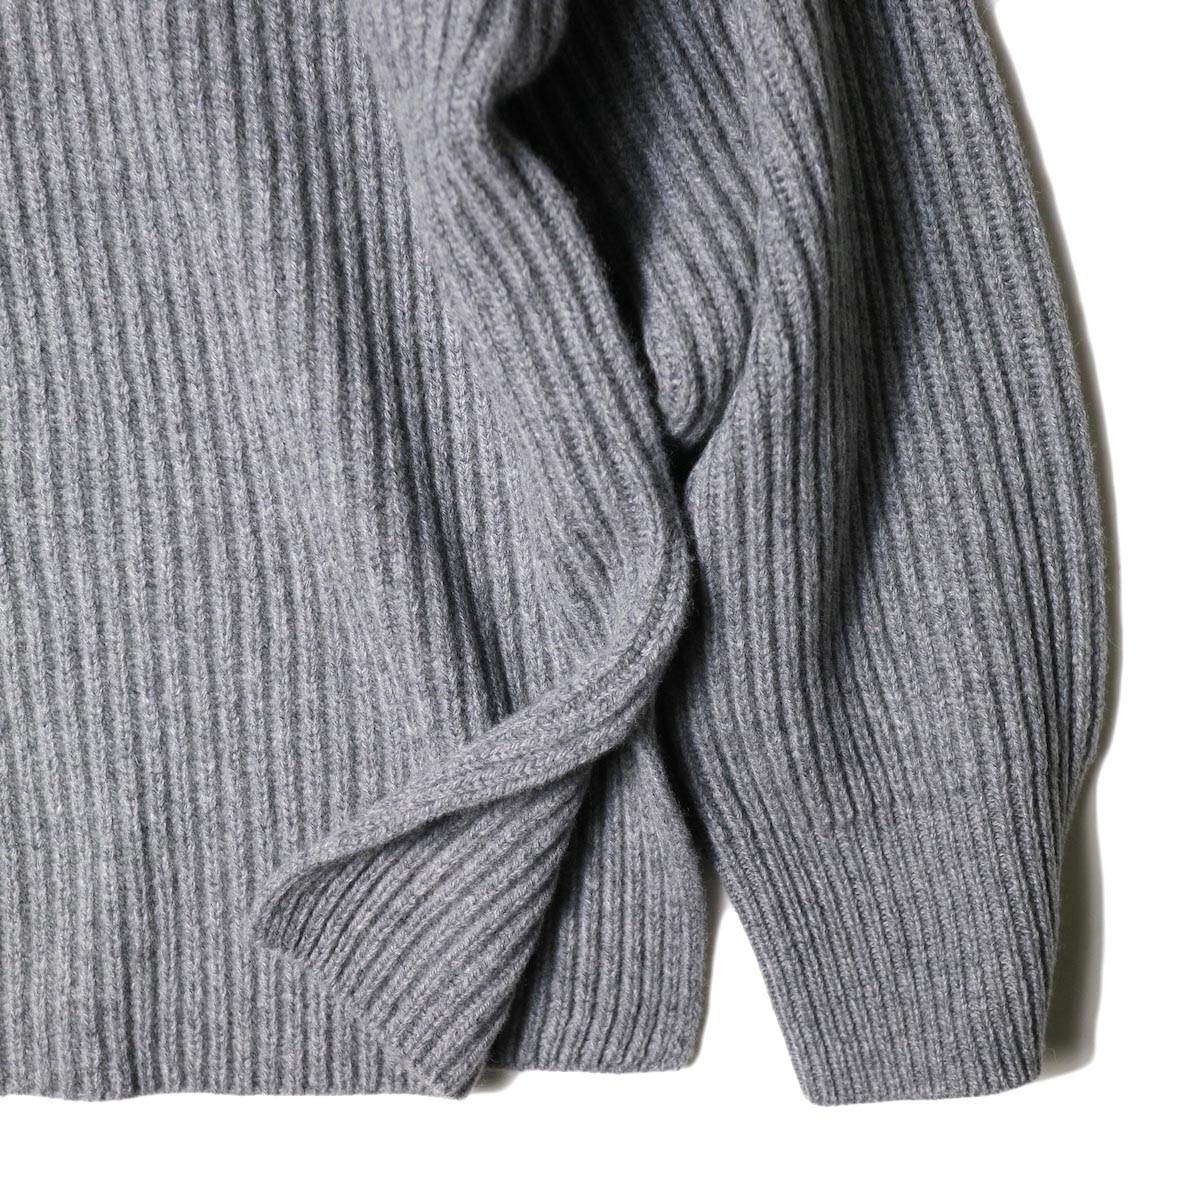 YLEVE / EXTRAFINE MERINO WOOL RIB KN TURTLE (grey) 袖・スリット